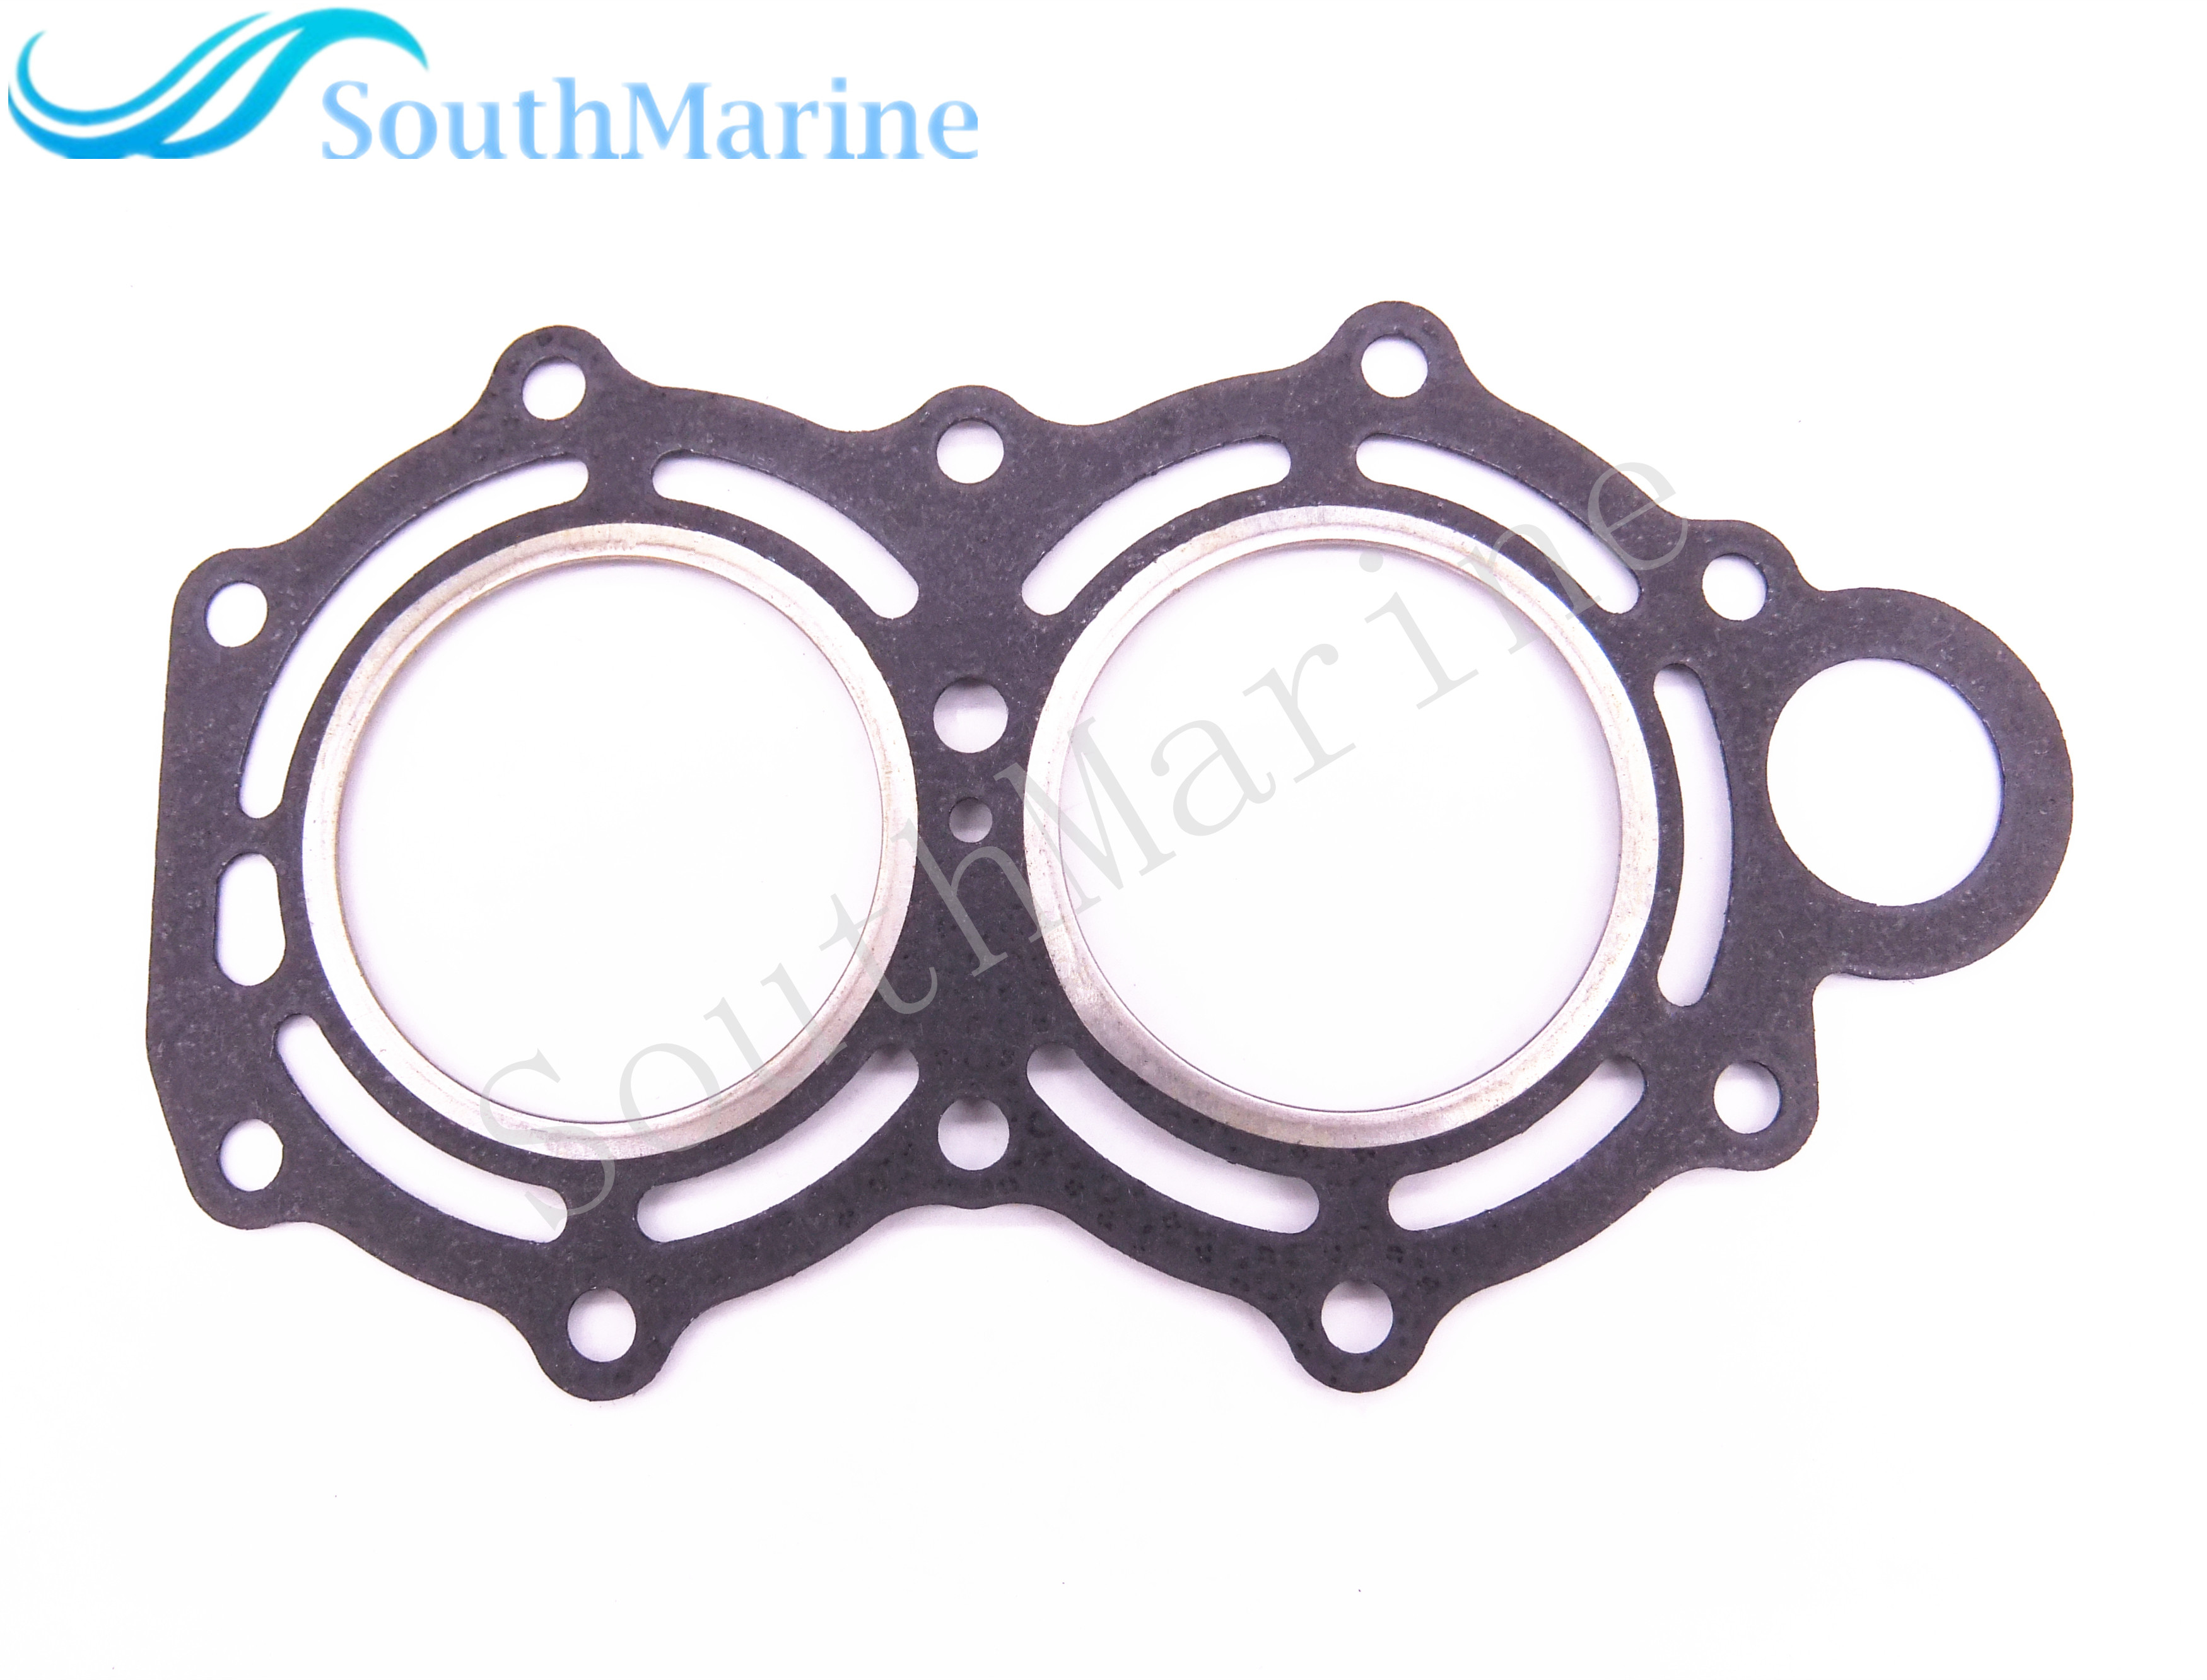 Outboard Engine 3B2-01005-0 3B201-0050M Cylinder Head Gasket For Tohatsu Nissan 2-Stroke 6HP 8HP 9.8HP Boat Motor Free Shipping